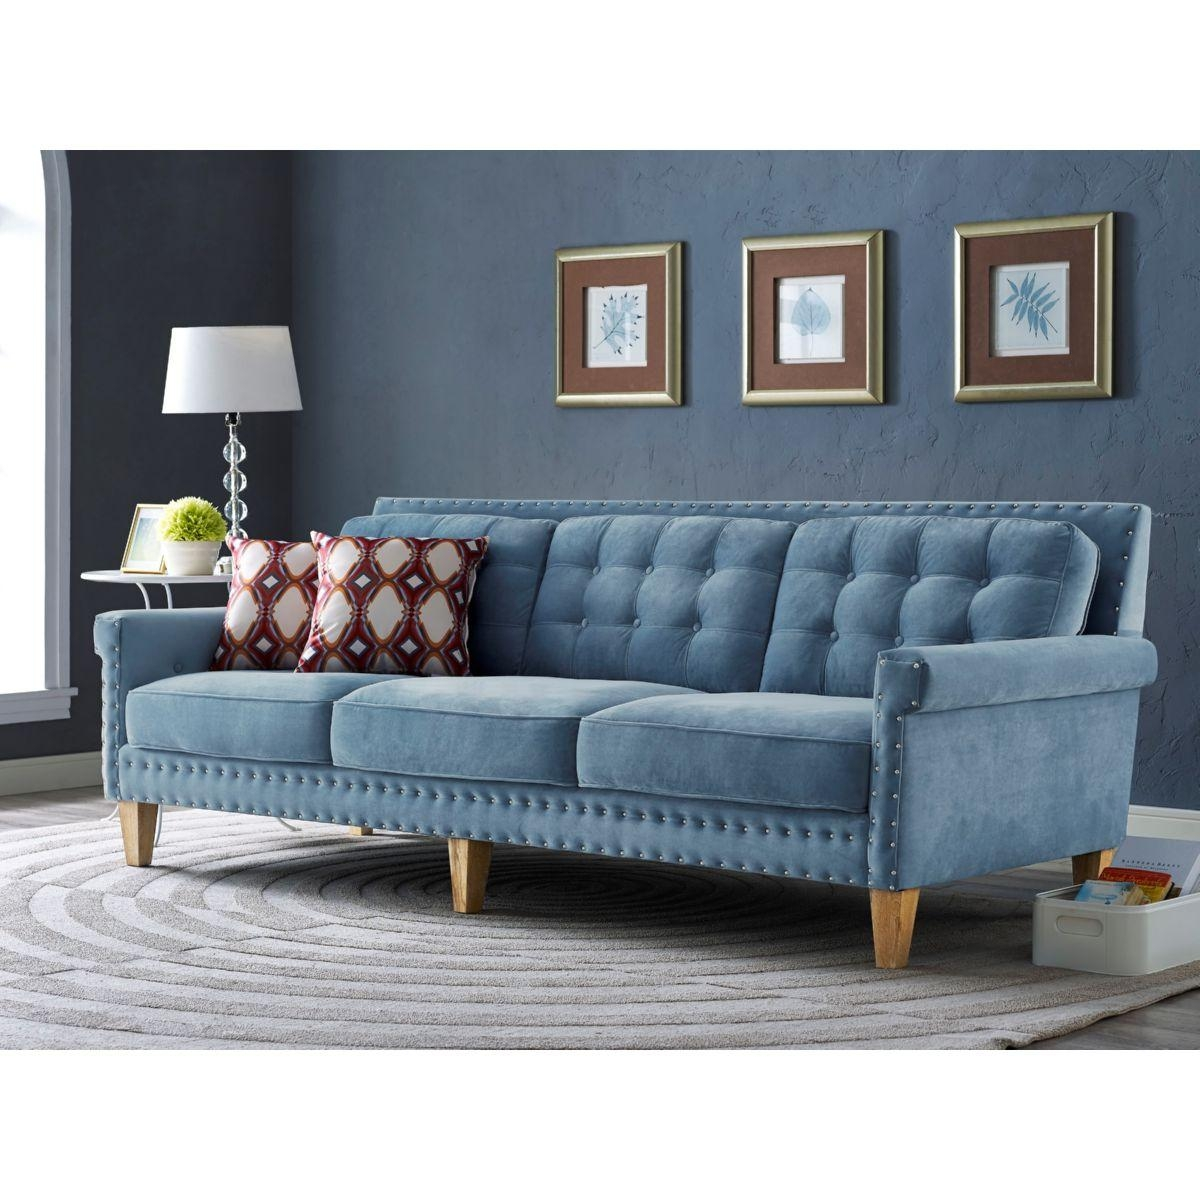 Tov Furniture Tov S75 Jonathan Tufted Blue Velvet Sofa W/ Silver Inside Silver Tufted Sofas (Image 17 of 20)